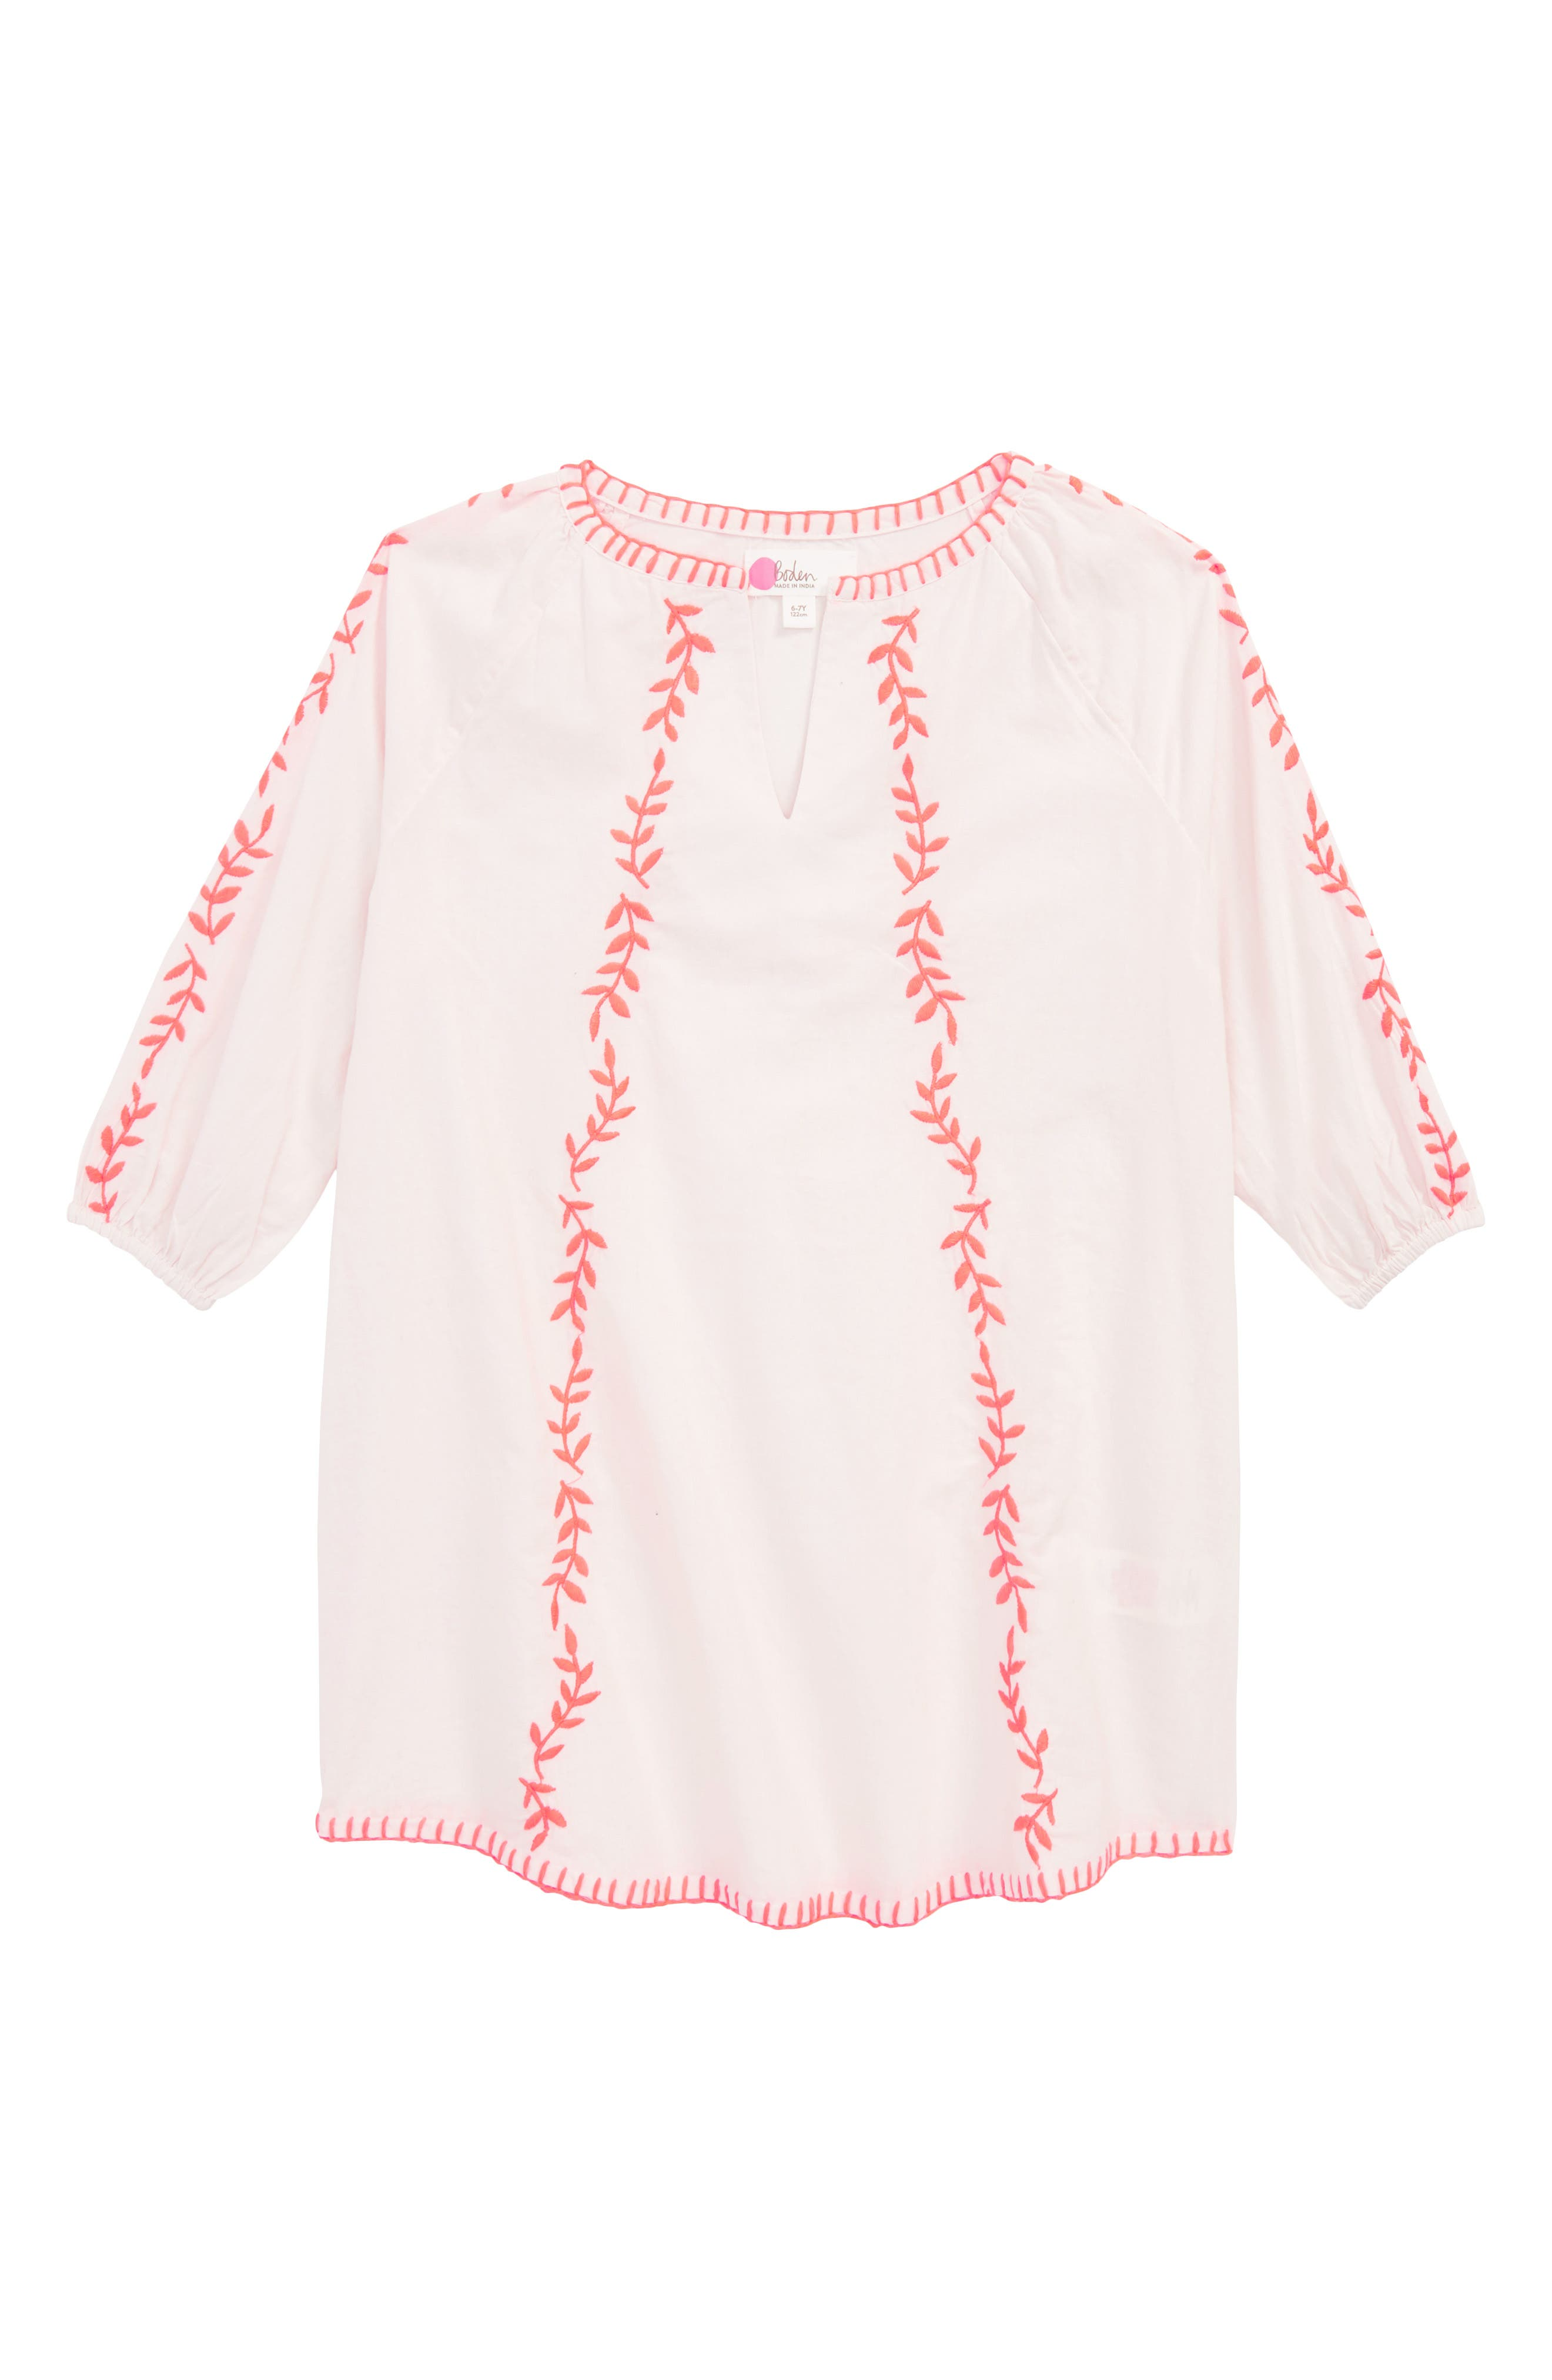 MINI BODEN Embroidered Cover-Up Caftan, Main, color, 684